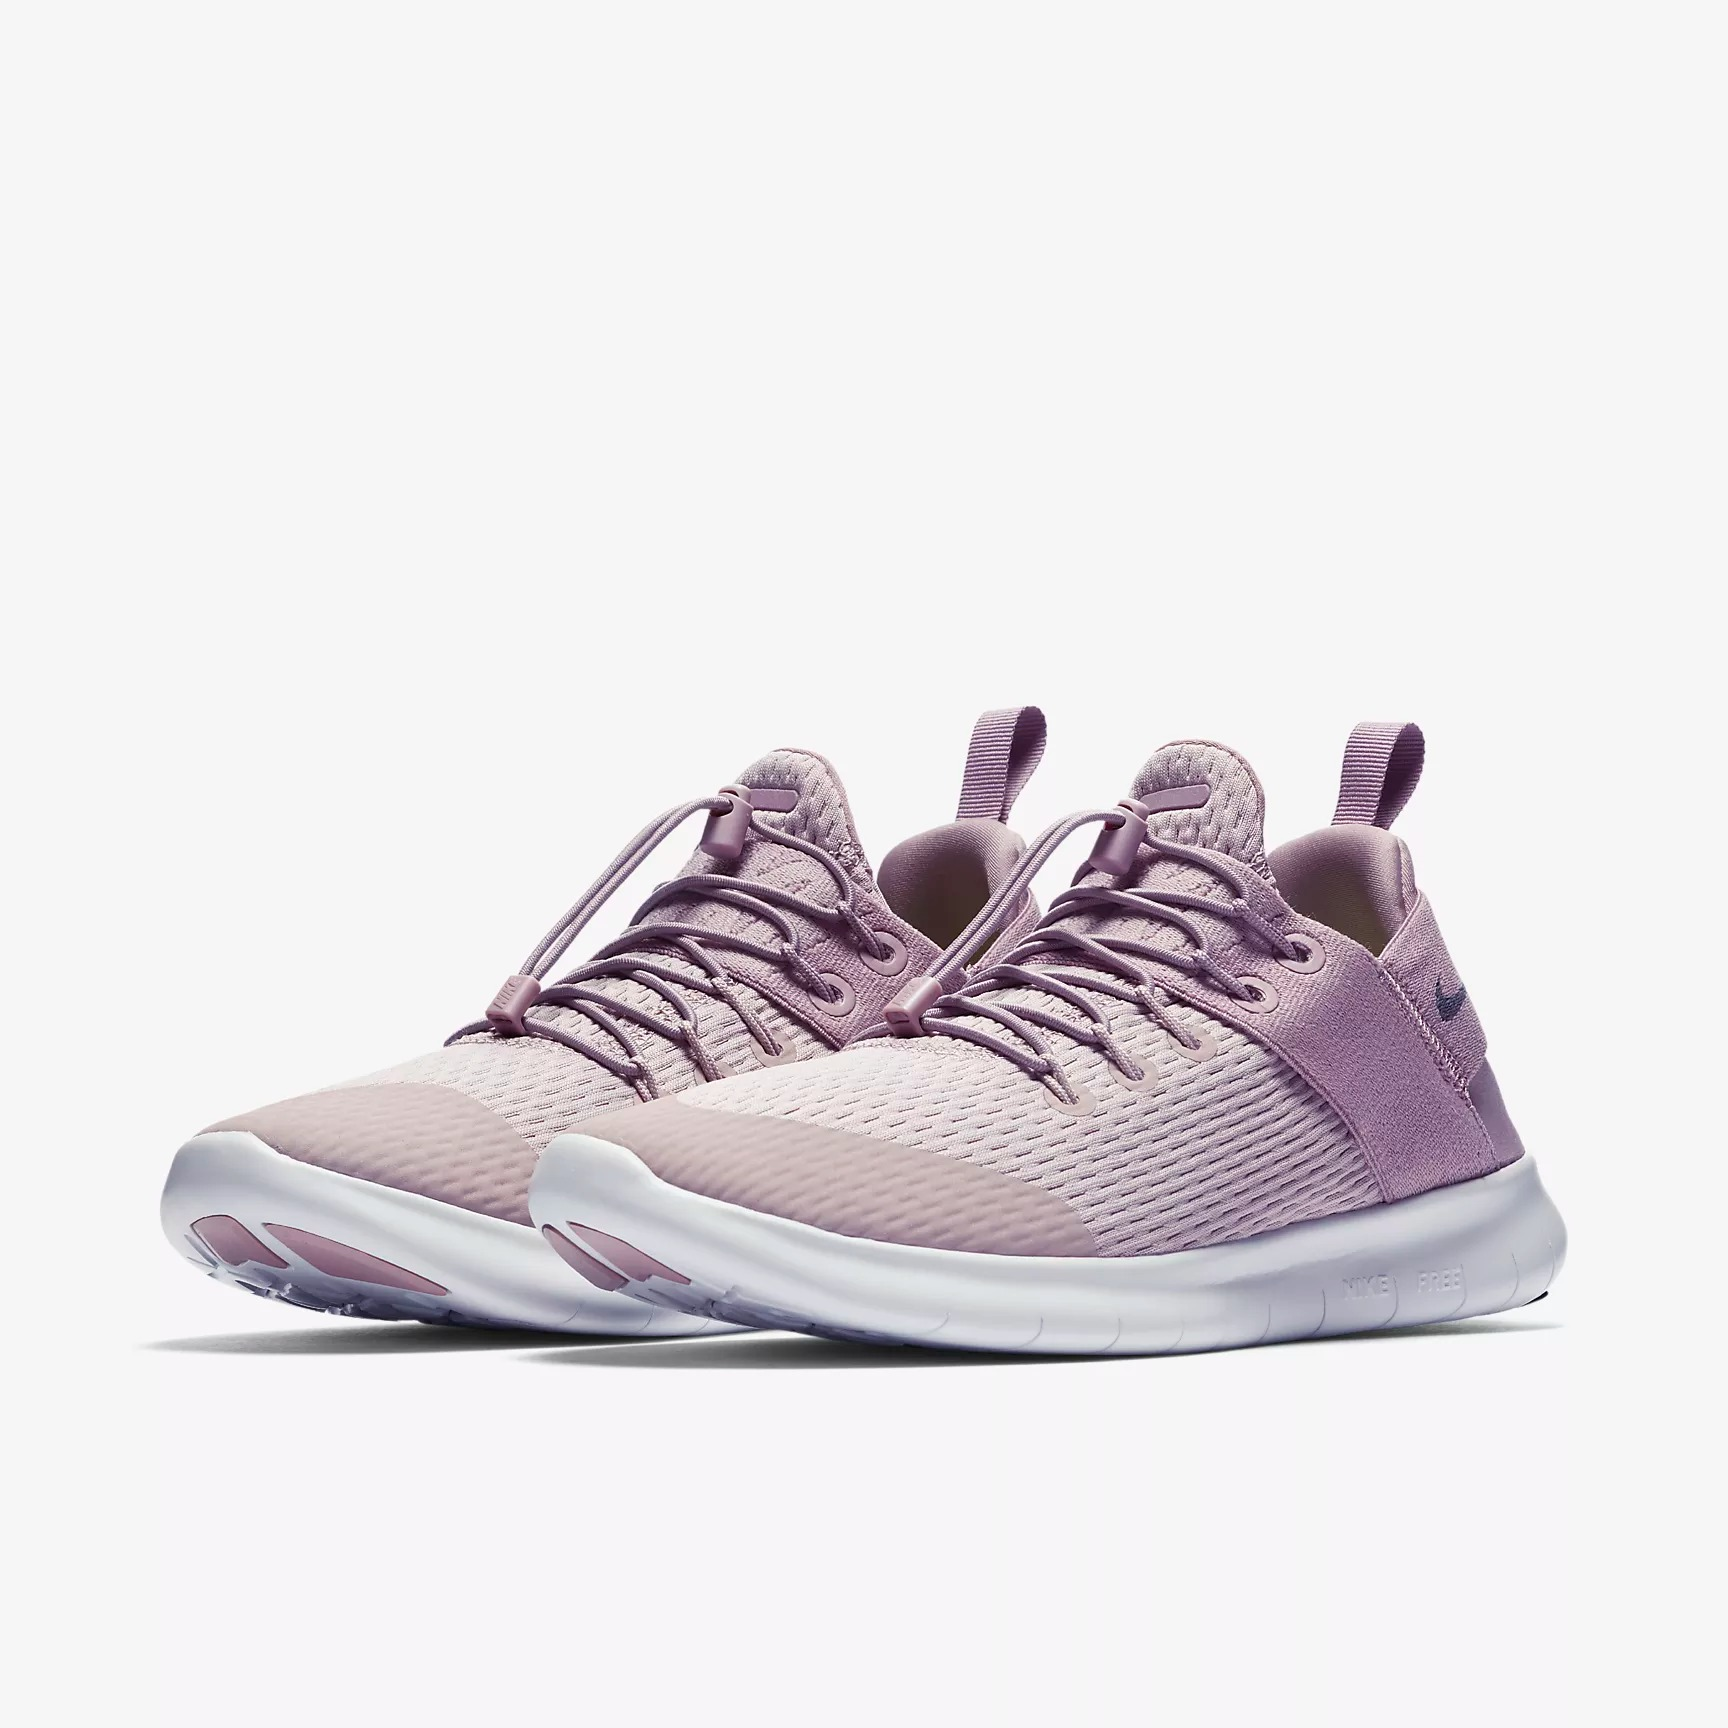 3b7562afda57 Nike Free RN Commuter 2017 Running Shoes - SPORT SHOES RUNNING SHOES -  Superfanas.lt